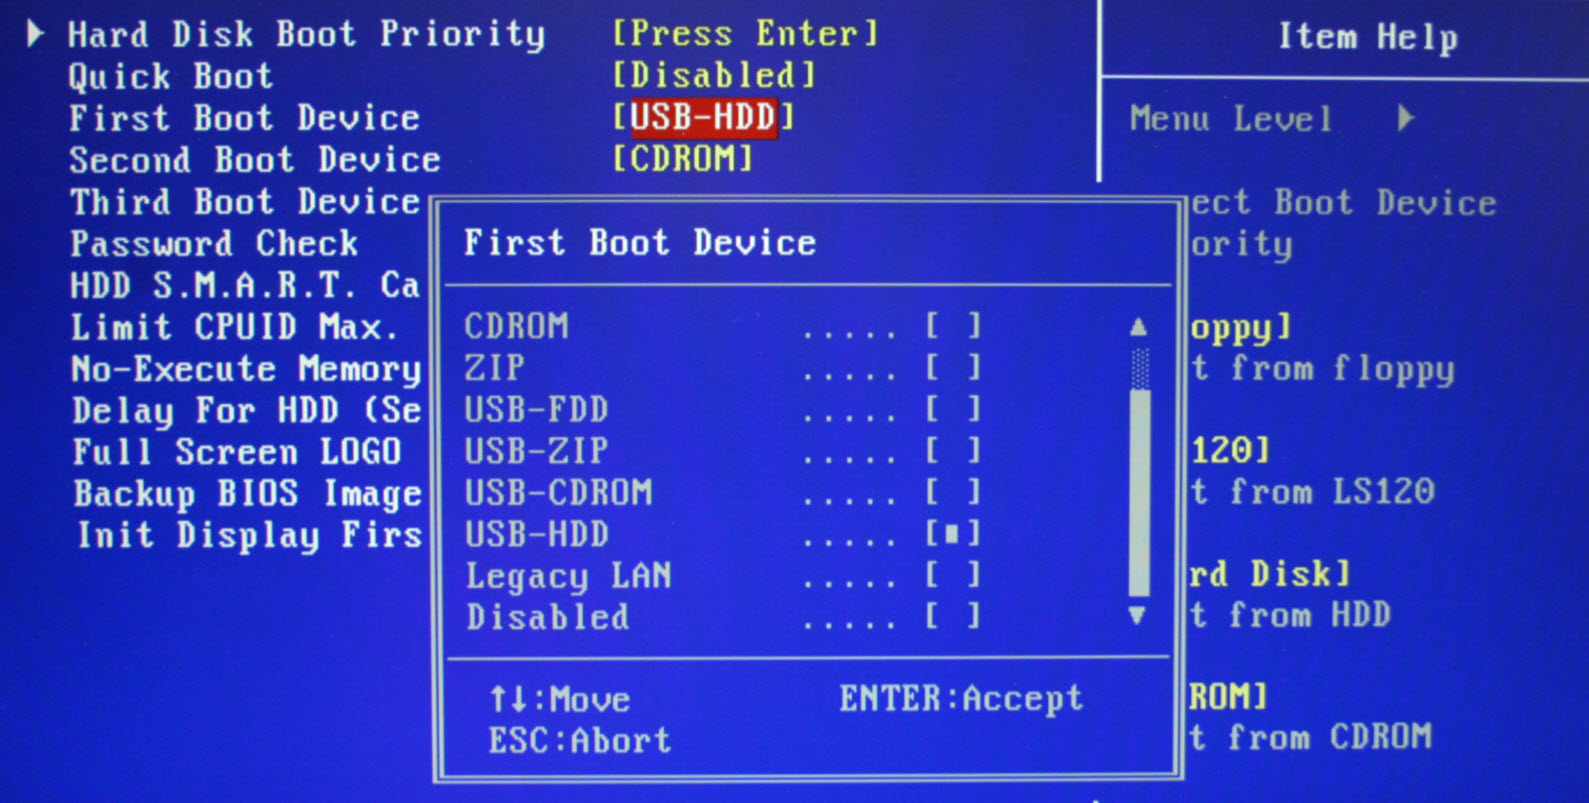 To keep your laptop secure, disable booting from a CD or USB.